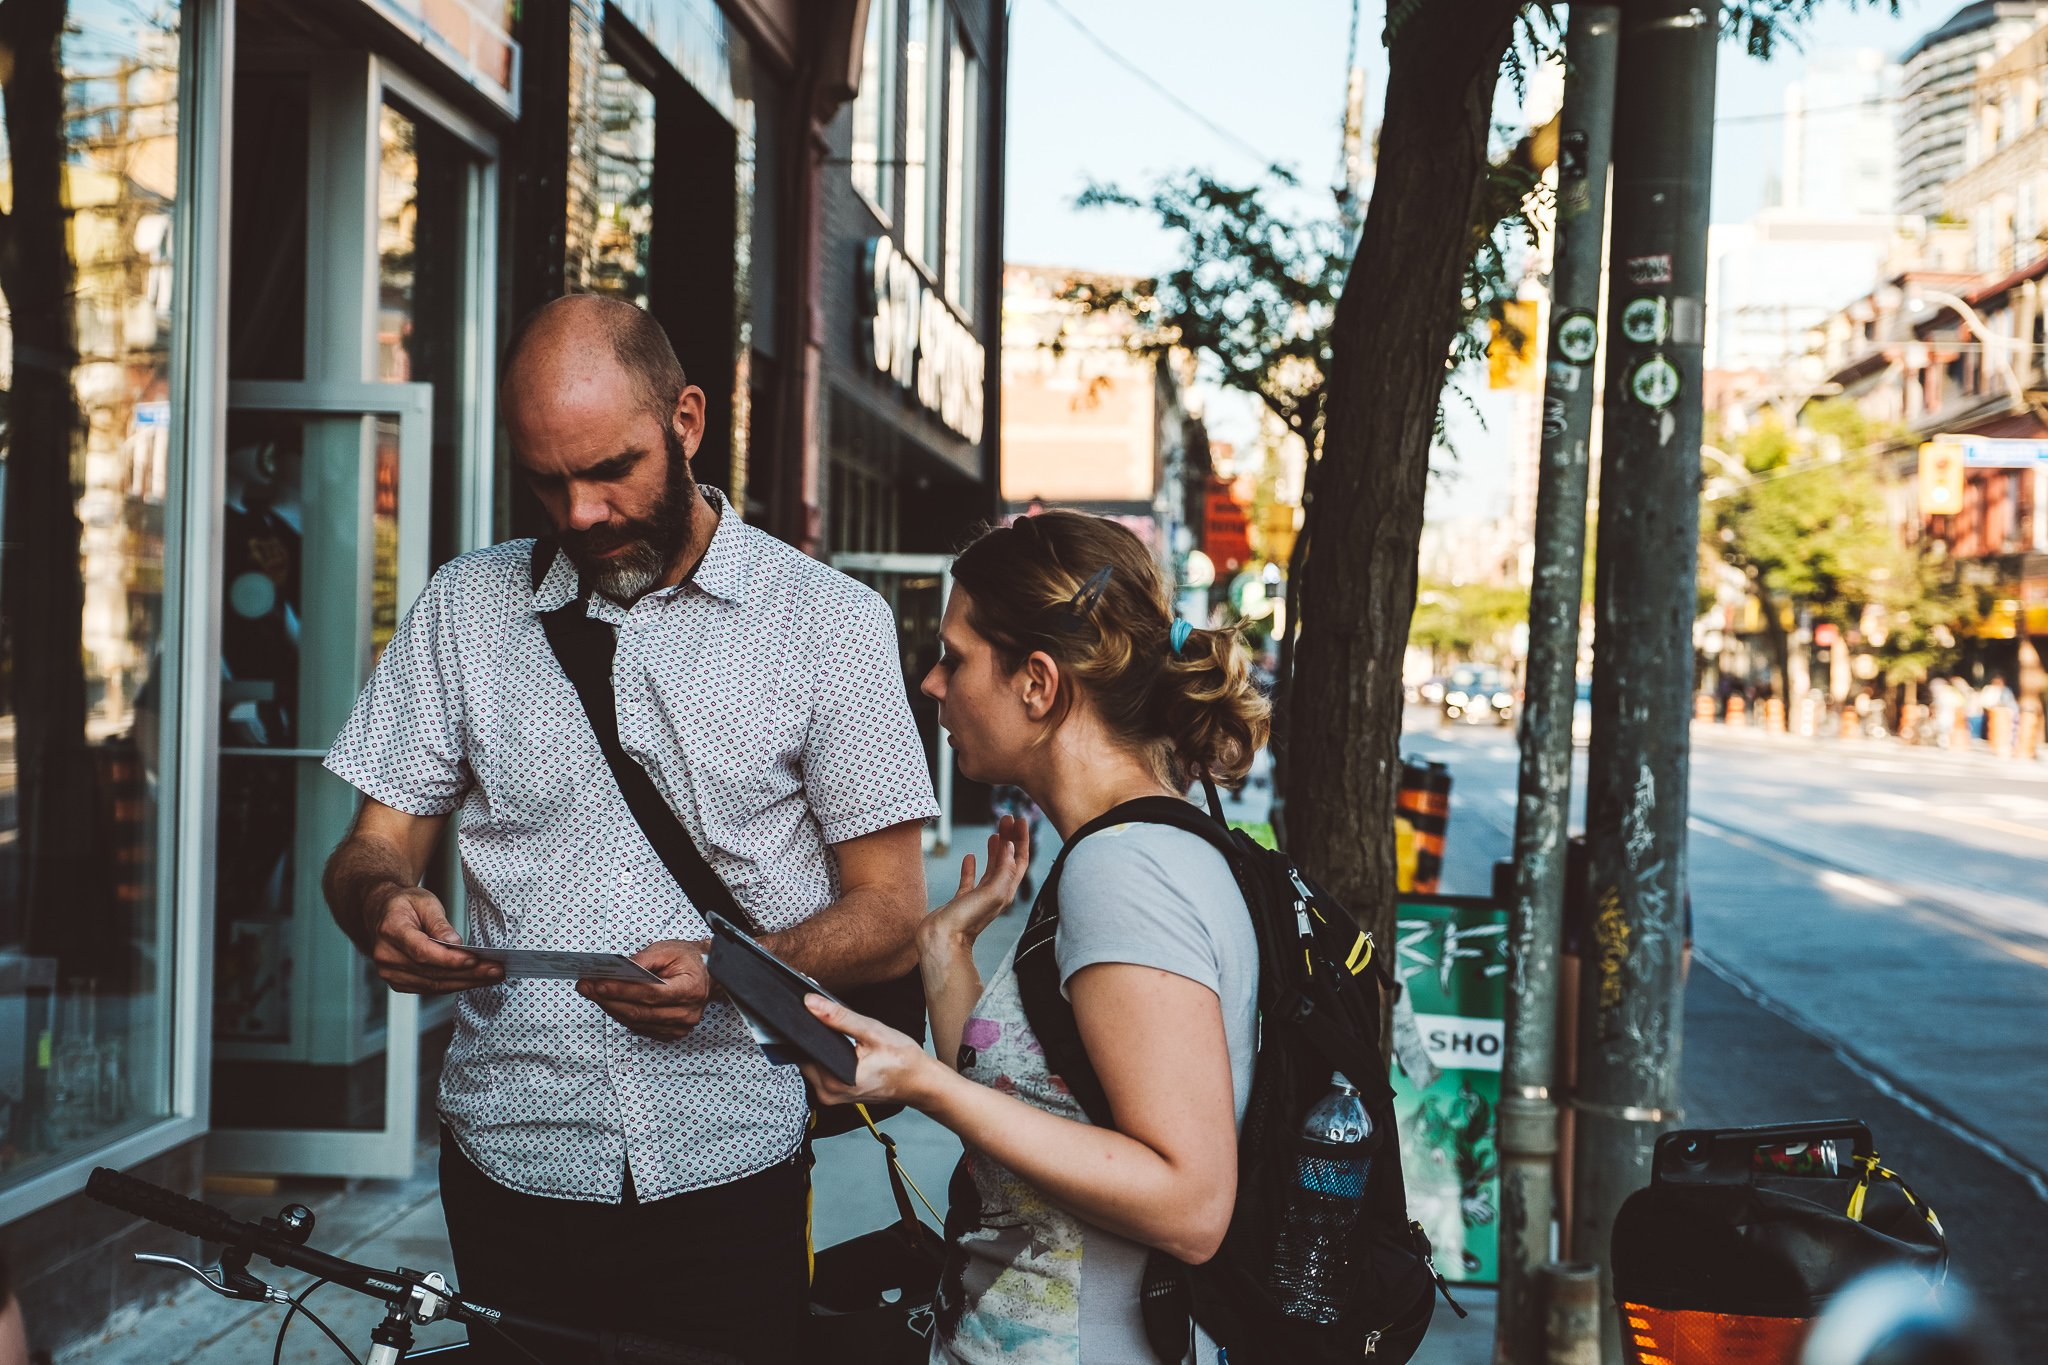 A Wheelmap ambassador talks to a passers-by on a sidewalk in Toronto and hands out a Wheelmap flyer.